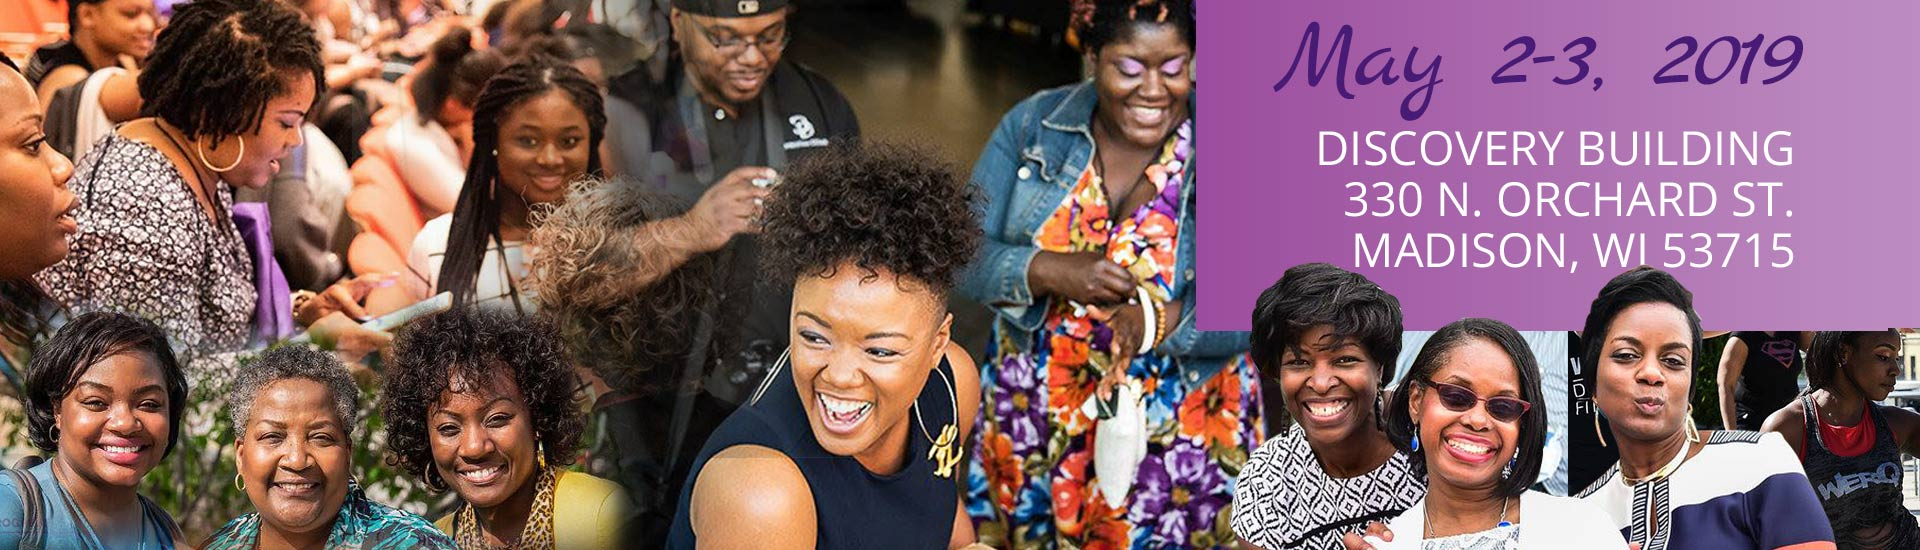 Black Women's Leadership Conference | May 2-3, 2019 | Madison, WI